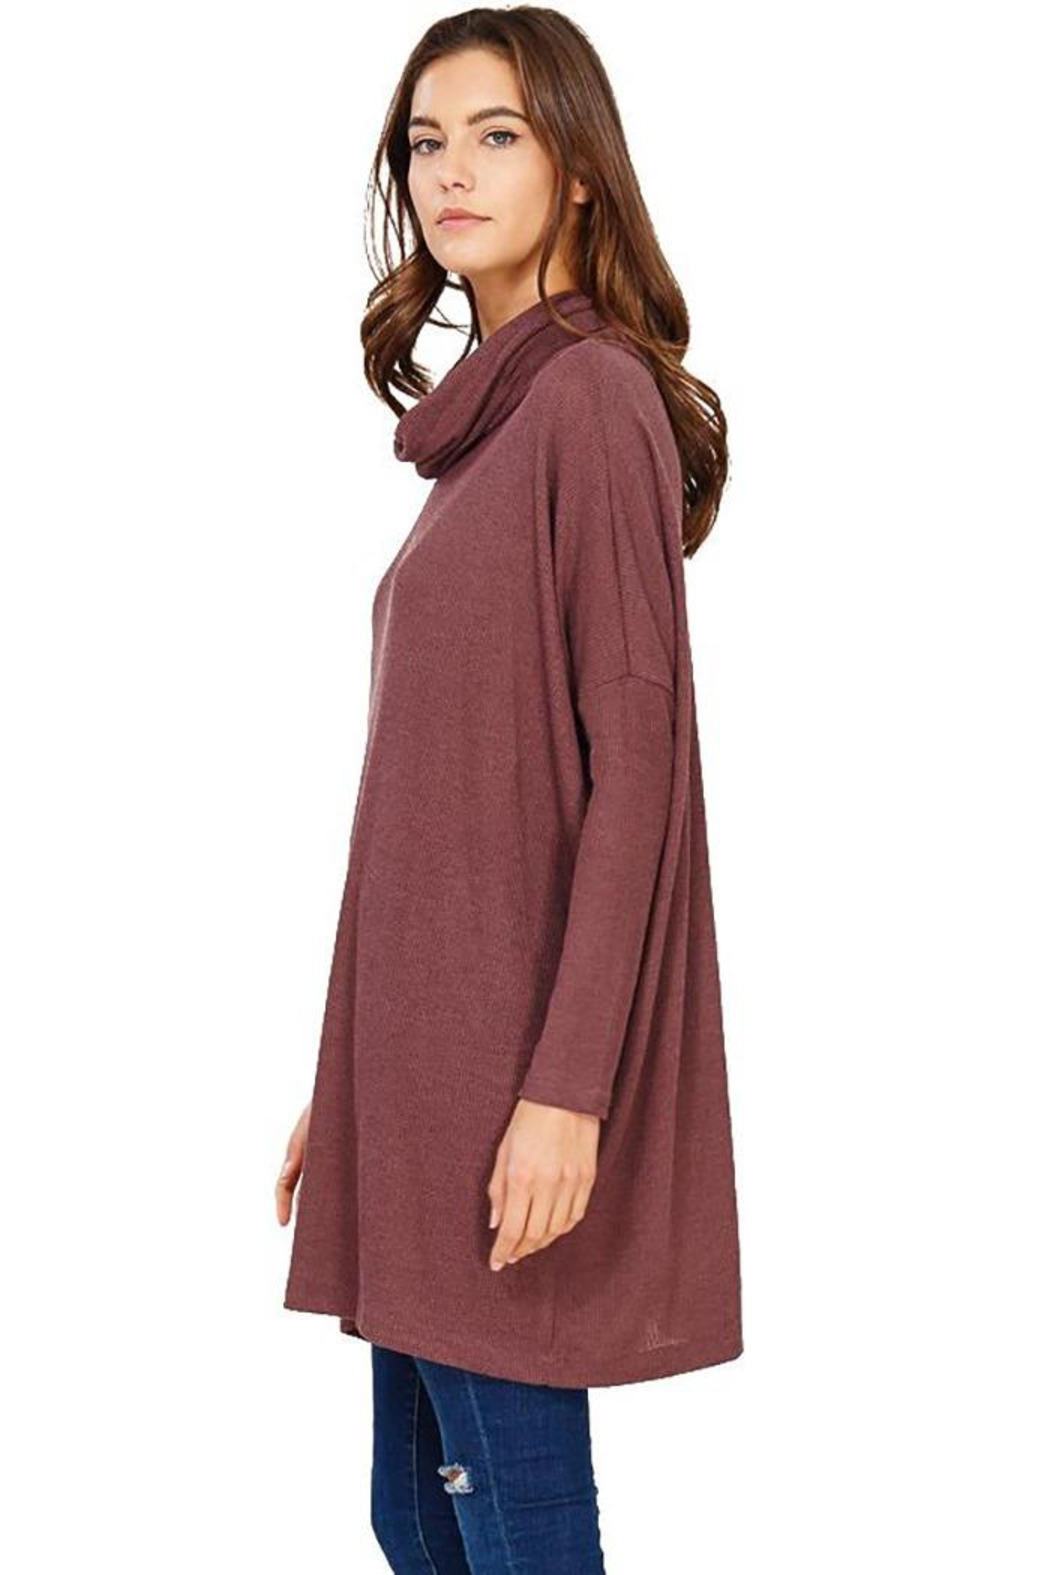 Audrey 3+1 Edie Turtleneck Sweater Dress - Back Cropped Image